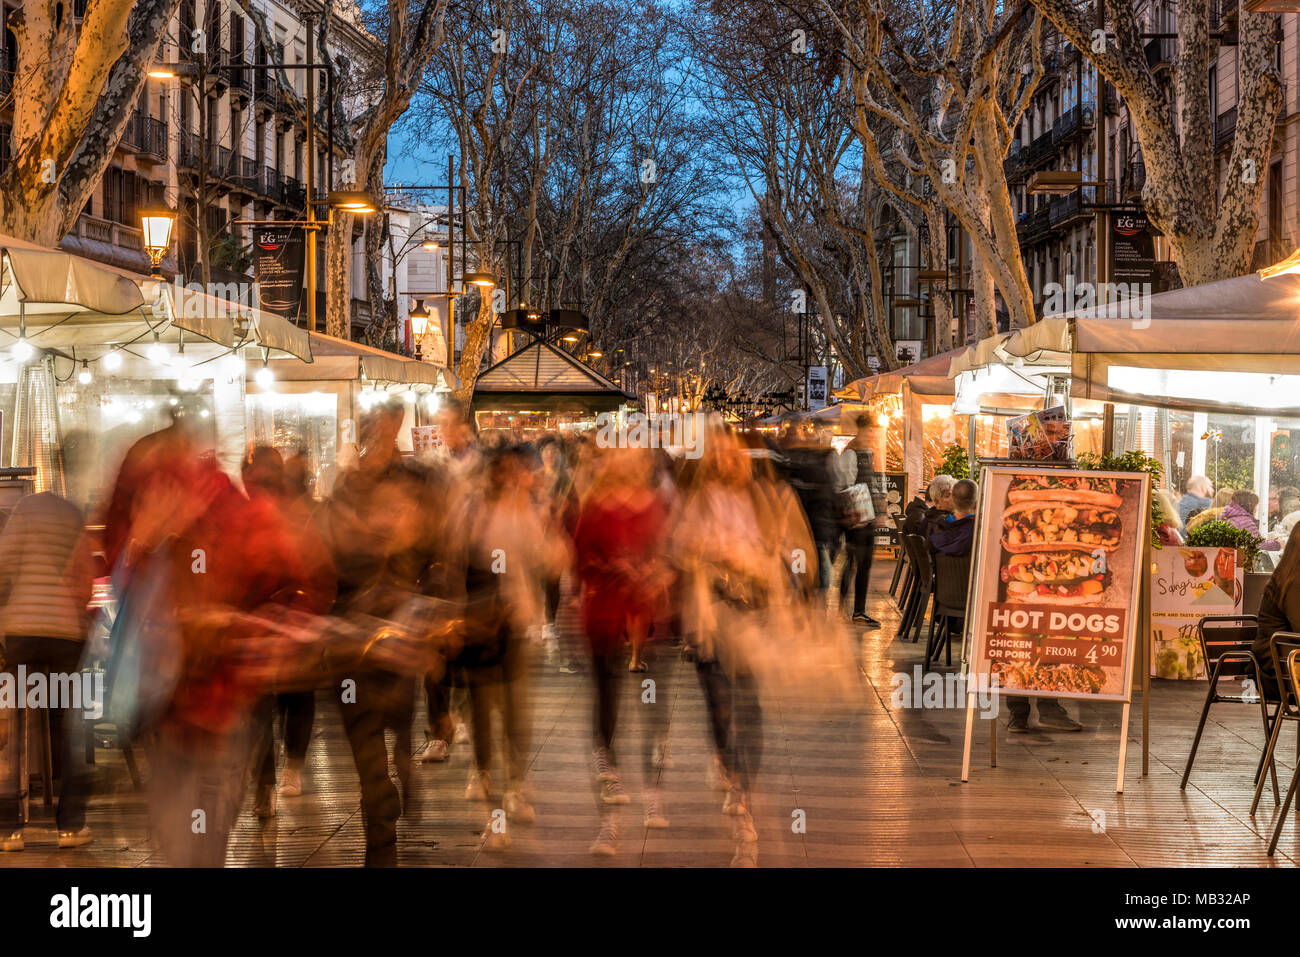 Tourists strolling along the worldwide famous Rambla pedestrian mall, Barcelona, Catalonia, Spain - Stock Image